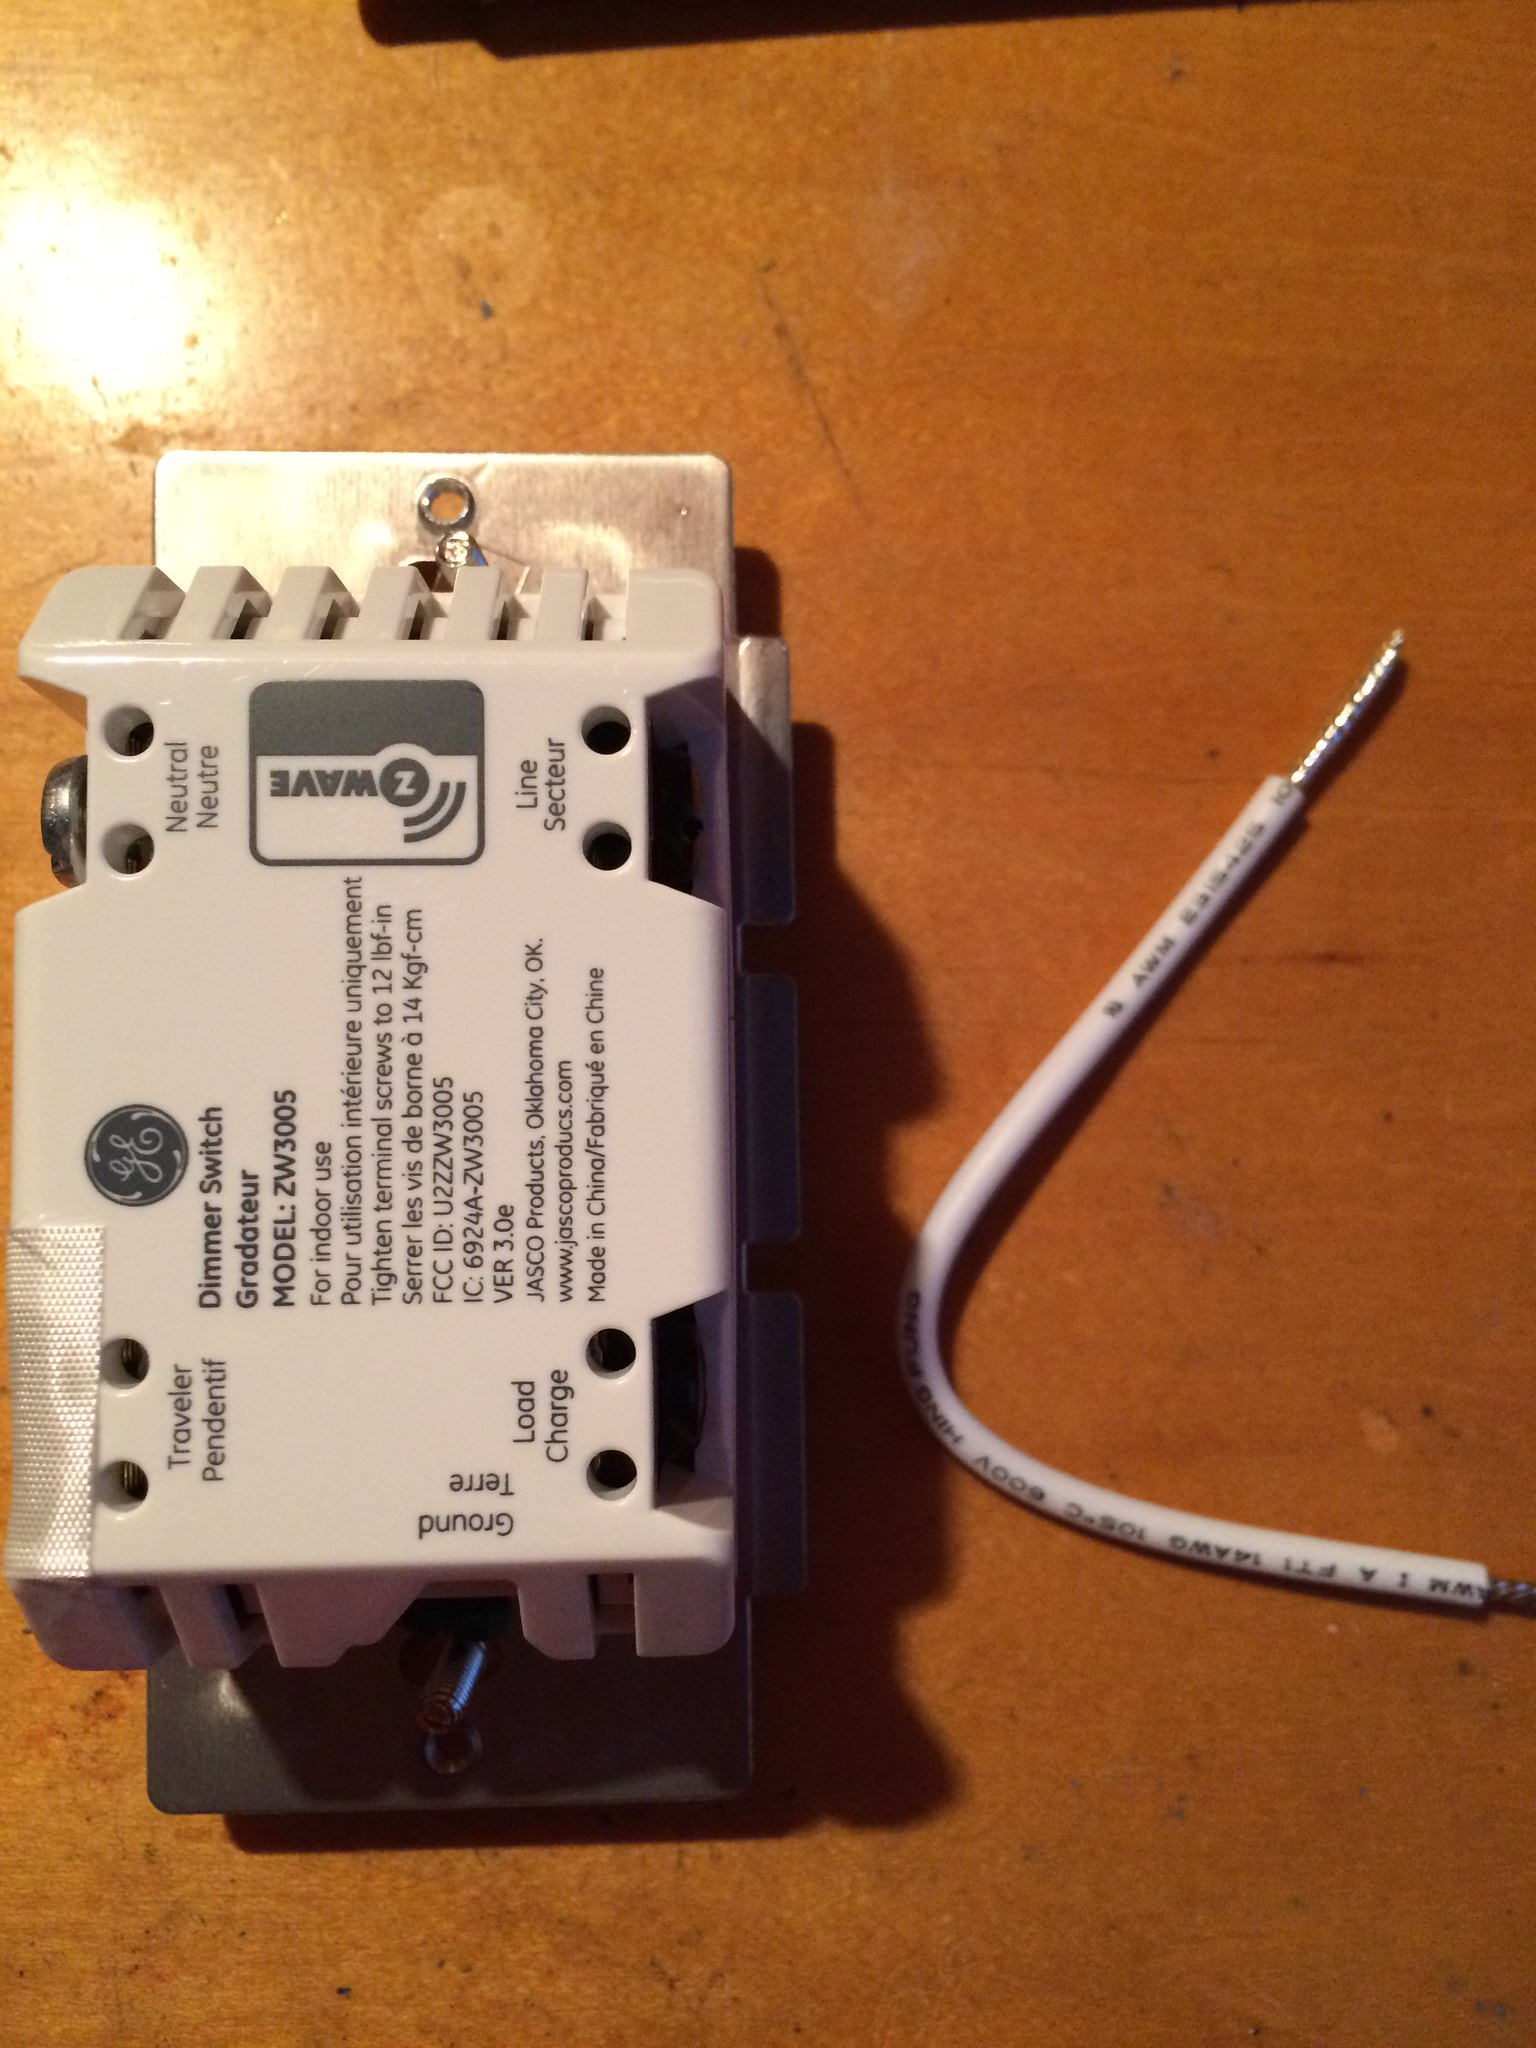 Dimmer Switch Ground Not Attached Exposed Hot Wire Do I Have A Automation Because Smart Light Switches Require Both And Neutral Box In My Room With Wires Pulled Out Power Off By Rr Reo On Flickr